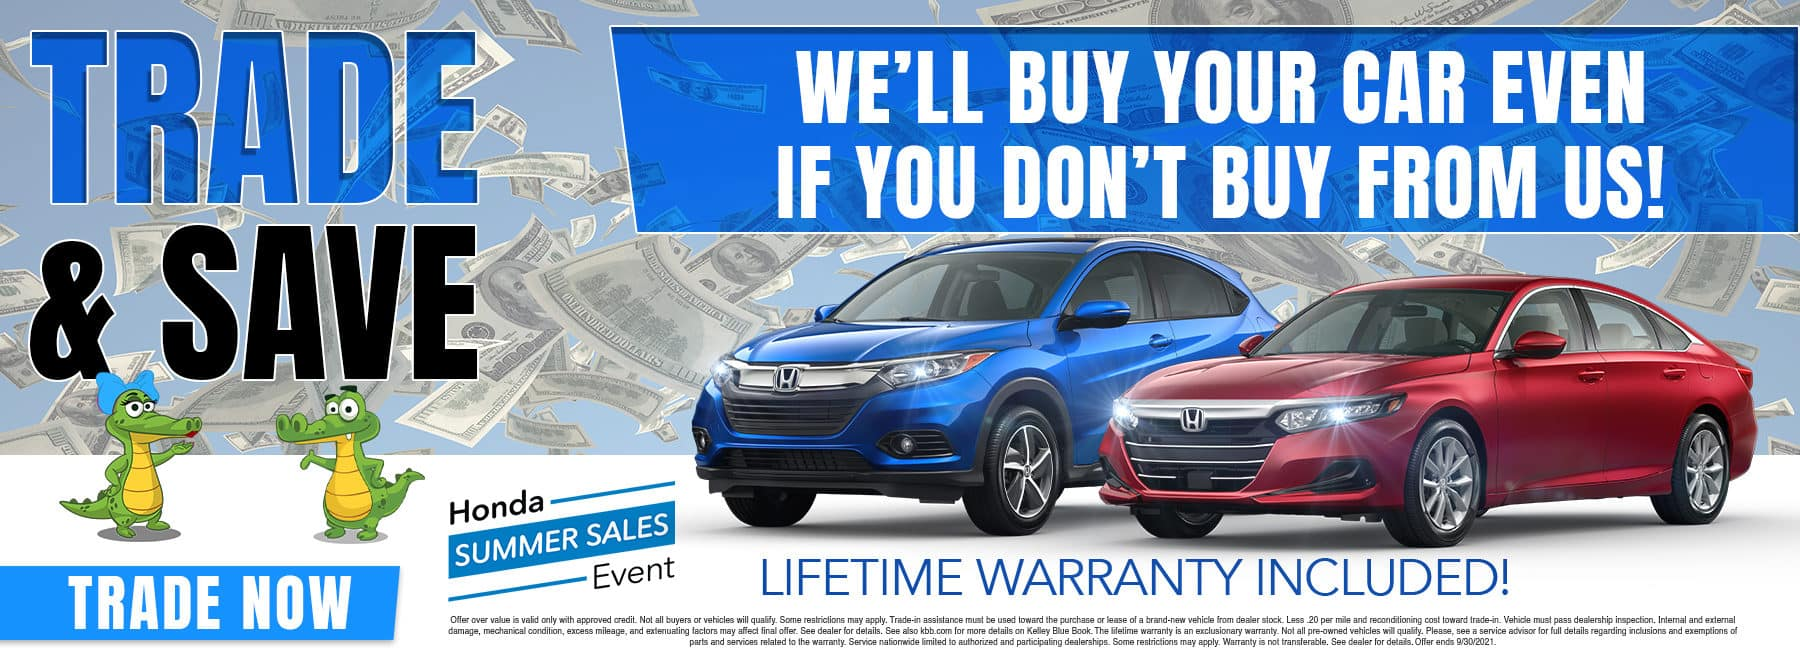 Trade & Save | We'll Buy Your Car Even If You Don't Buy From Us!